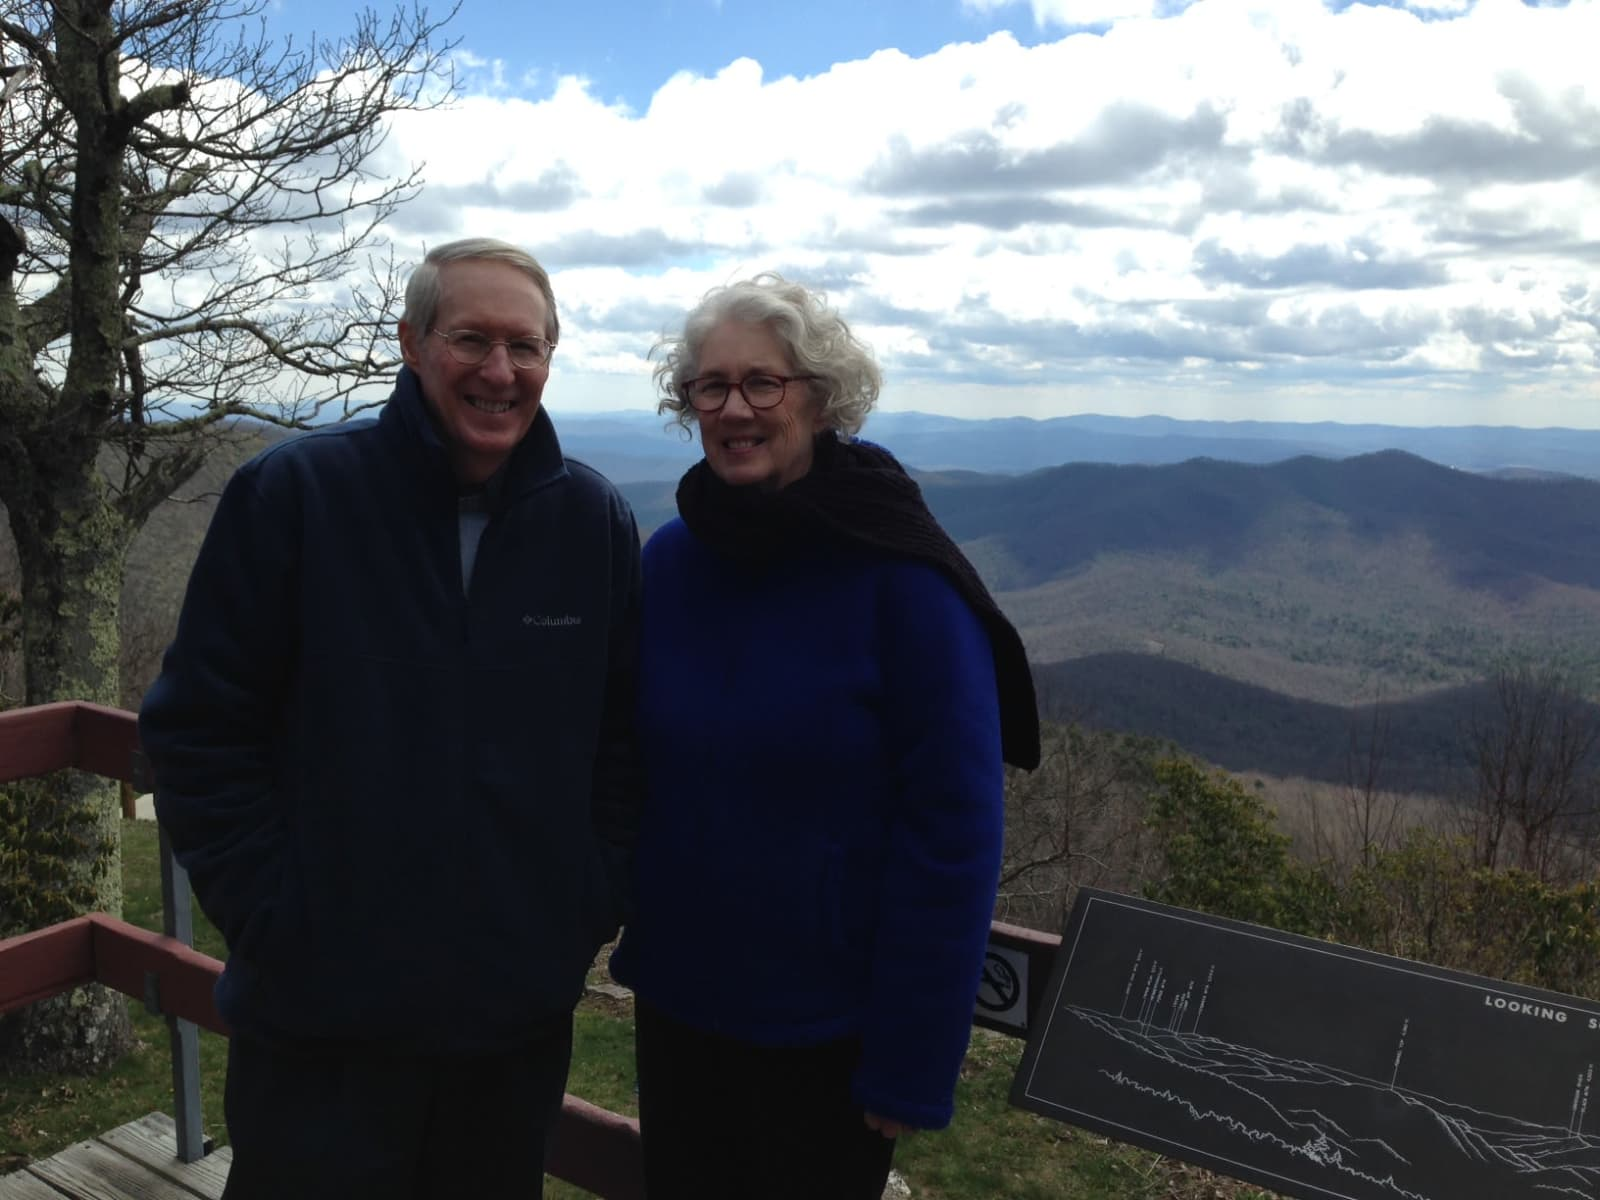 Melinda & Hal from Saluda, North Carolina, United States